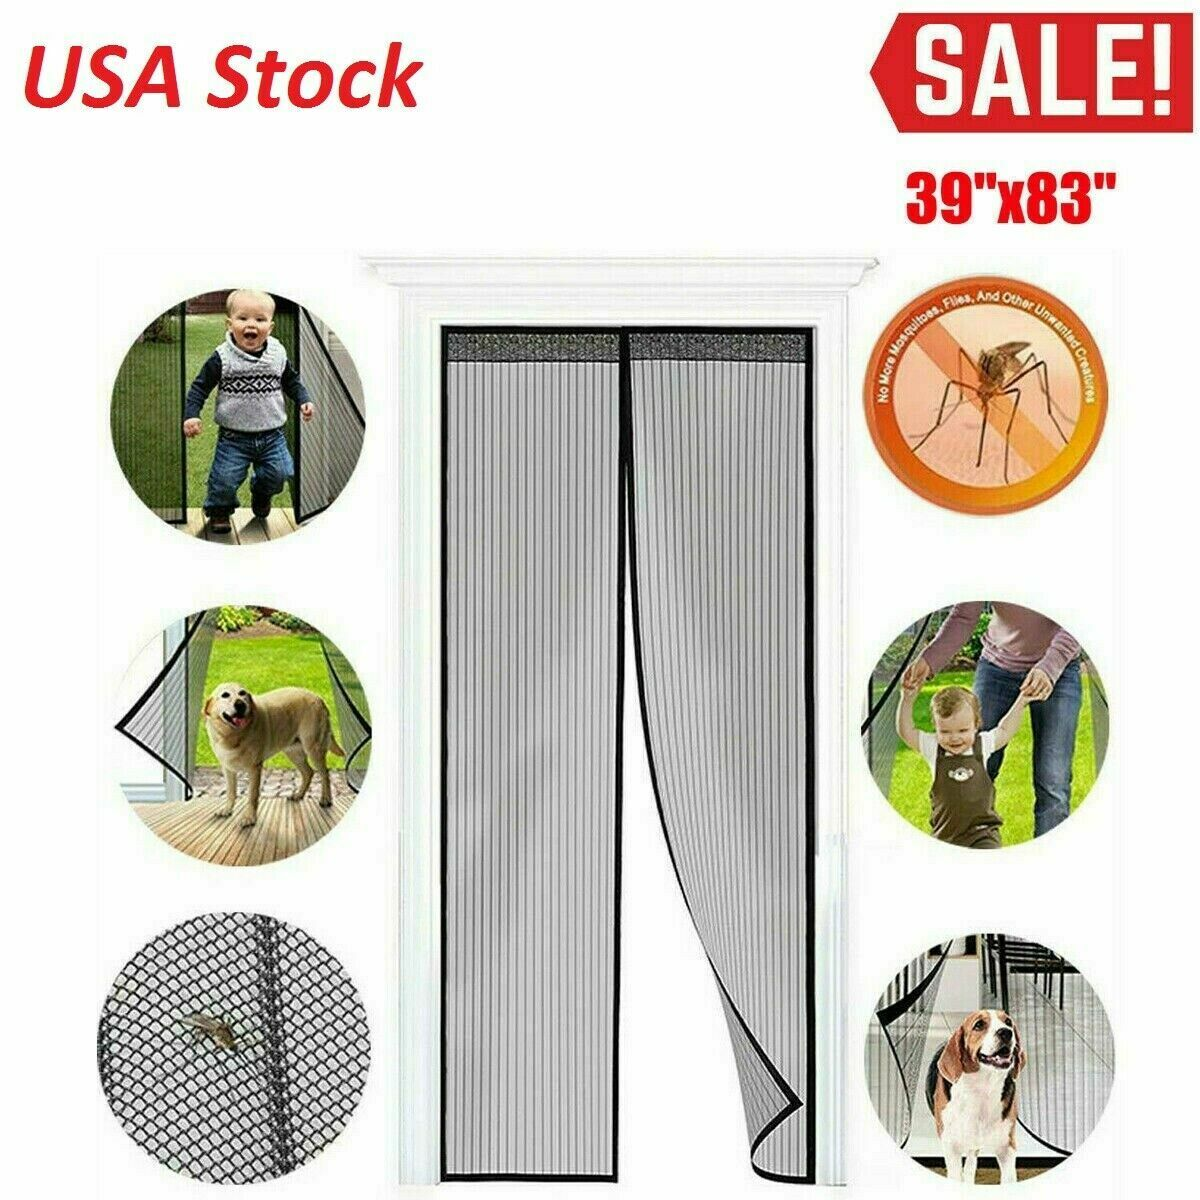 Hands-Free Magnetic Screen Door Mesh Net Mosquito Fly Insect